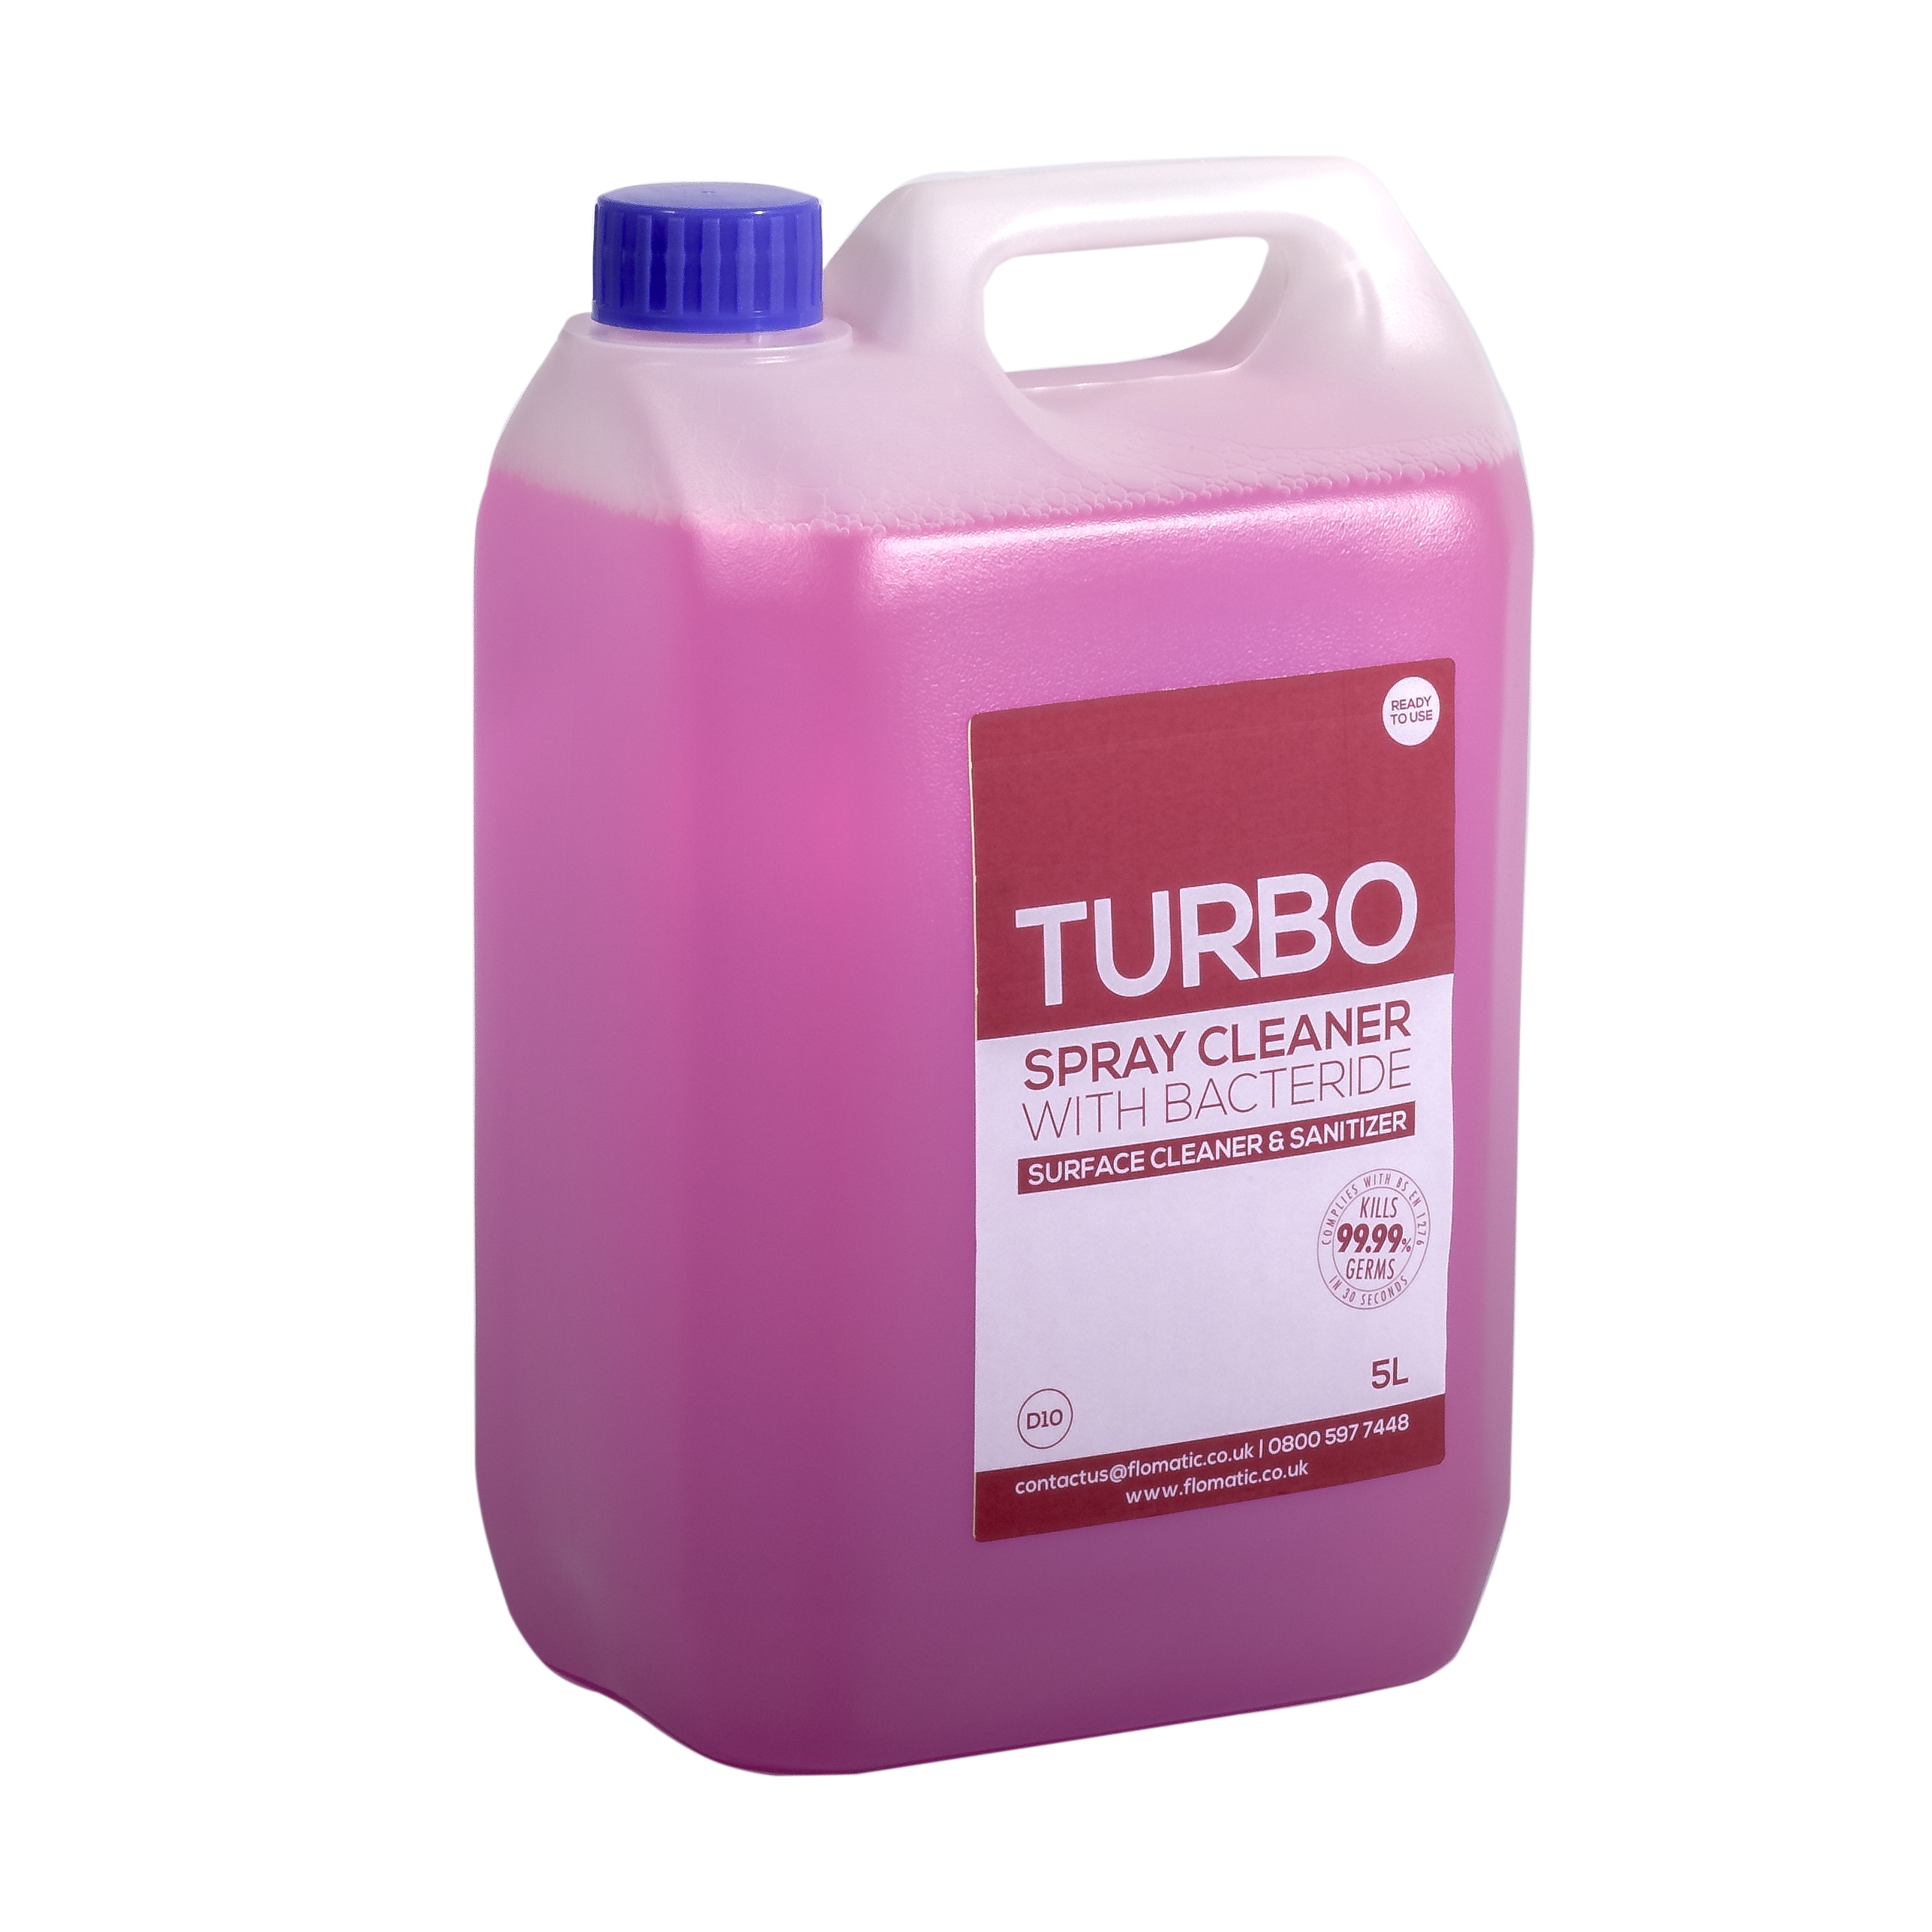 TURBO Spray Cleaner With Bactericide